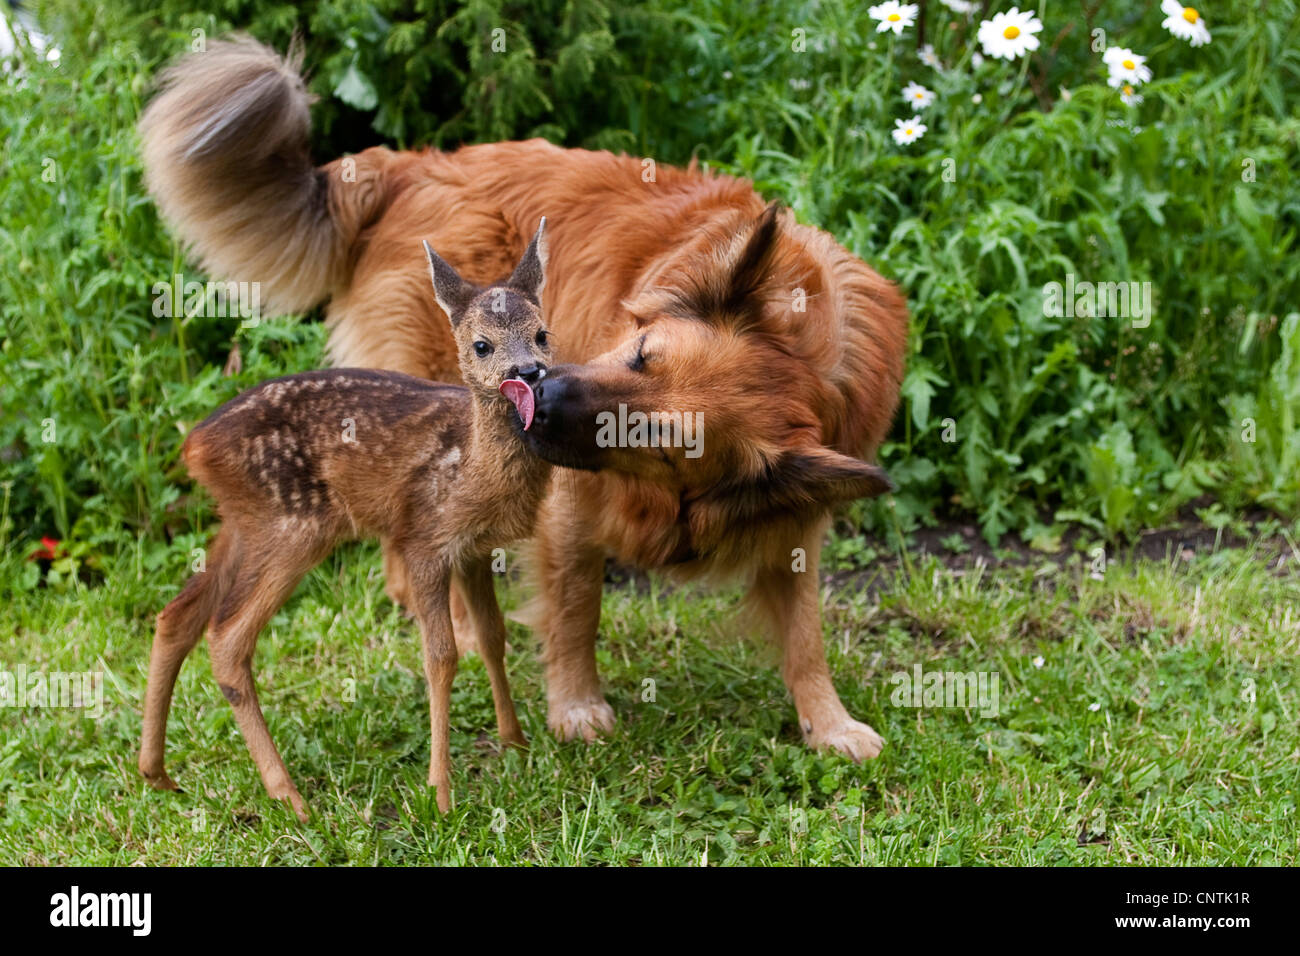 roe deer (Capreolus capreolus), dog is licking the fwan in a garden ...